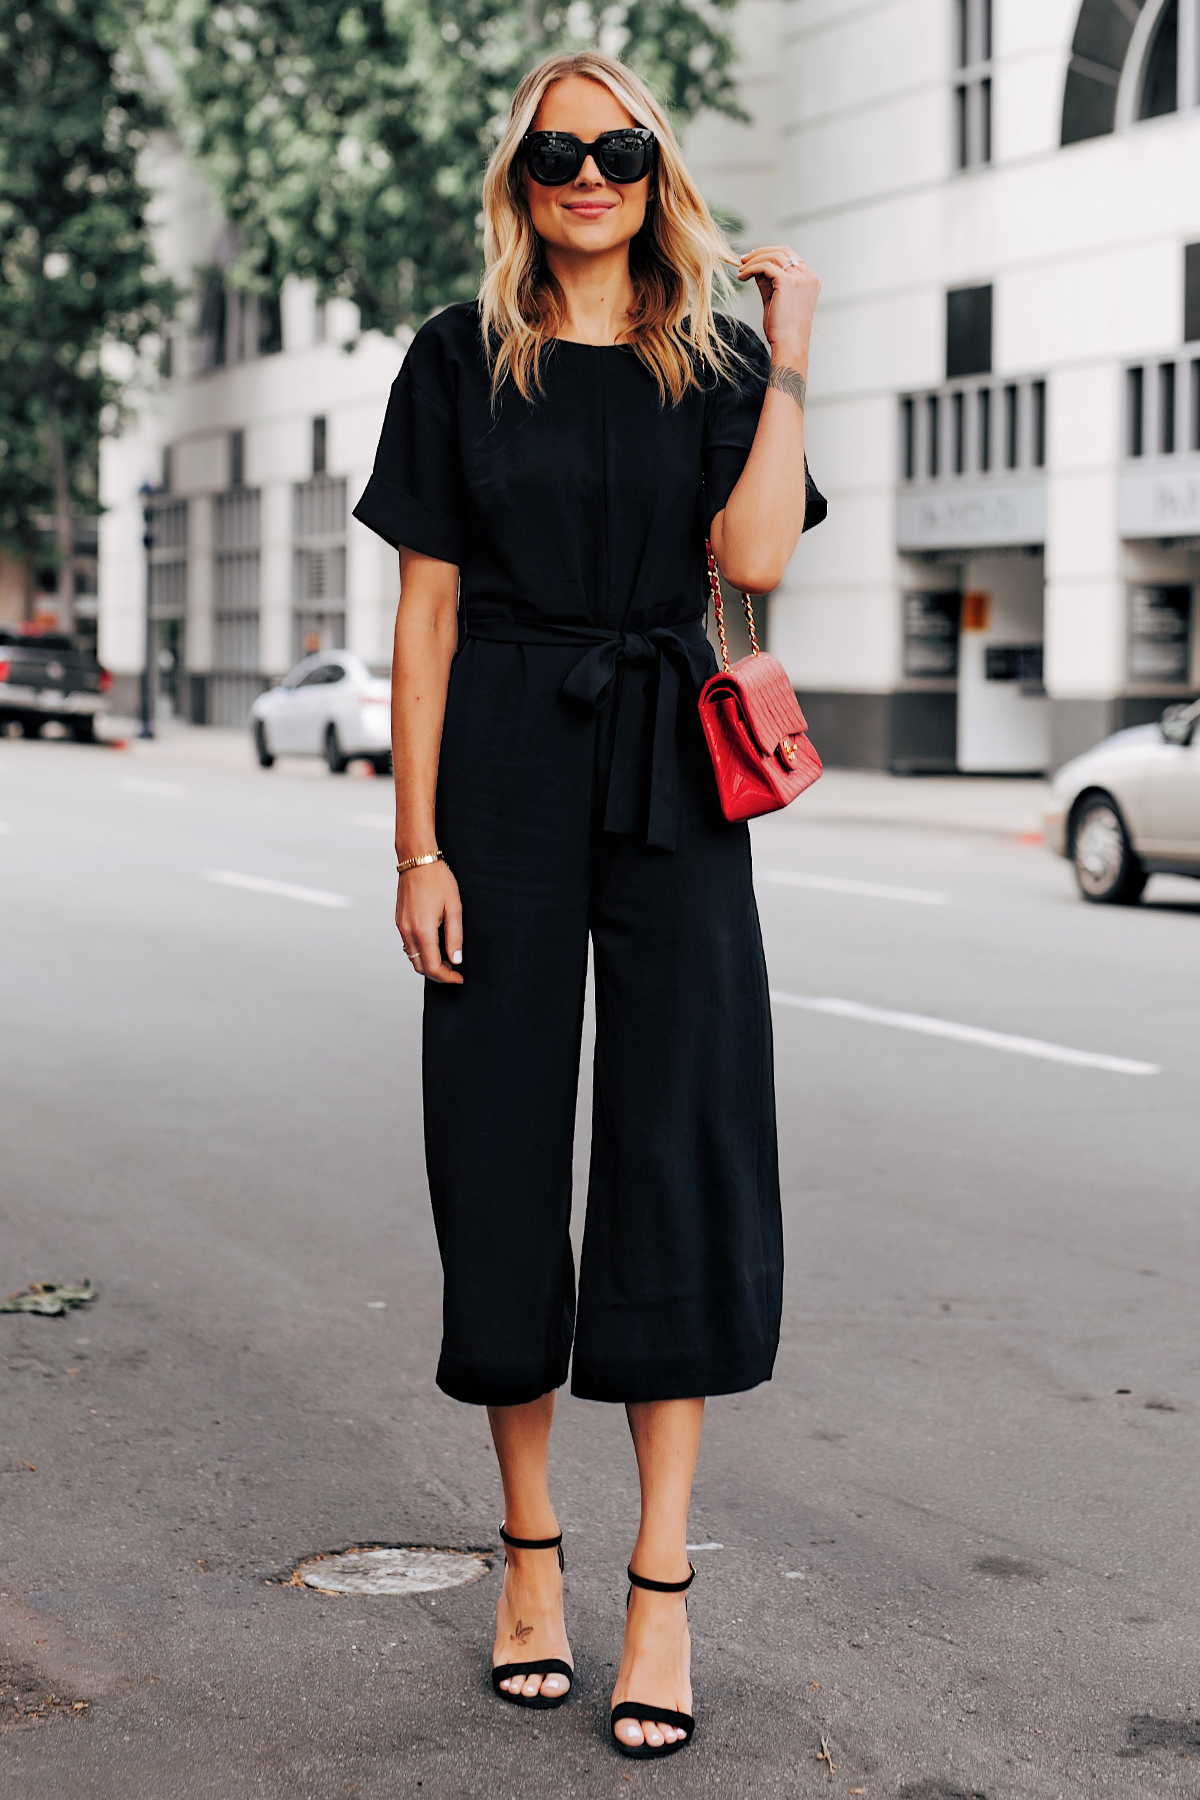 Blonde Woman Wearing Everlane Tie Waist Black Jumpsuit Red Chanel Handbag Black Sandals Fashion Jackson San Diego Fashion Blogger Street Style